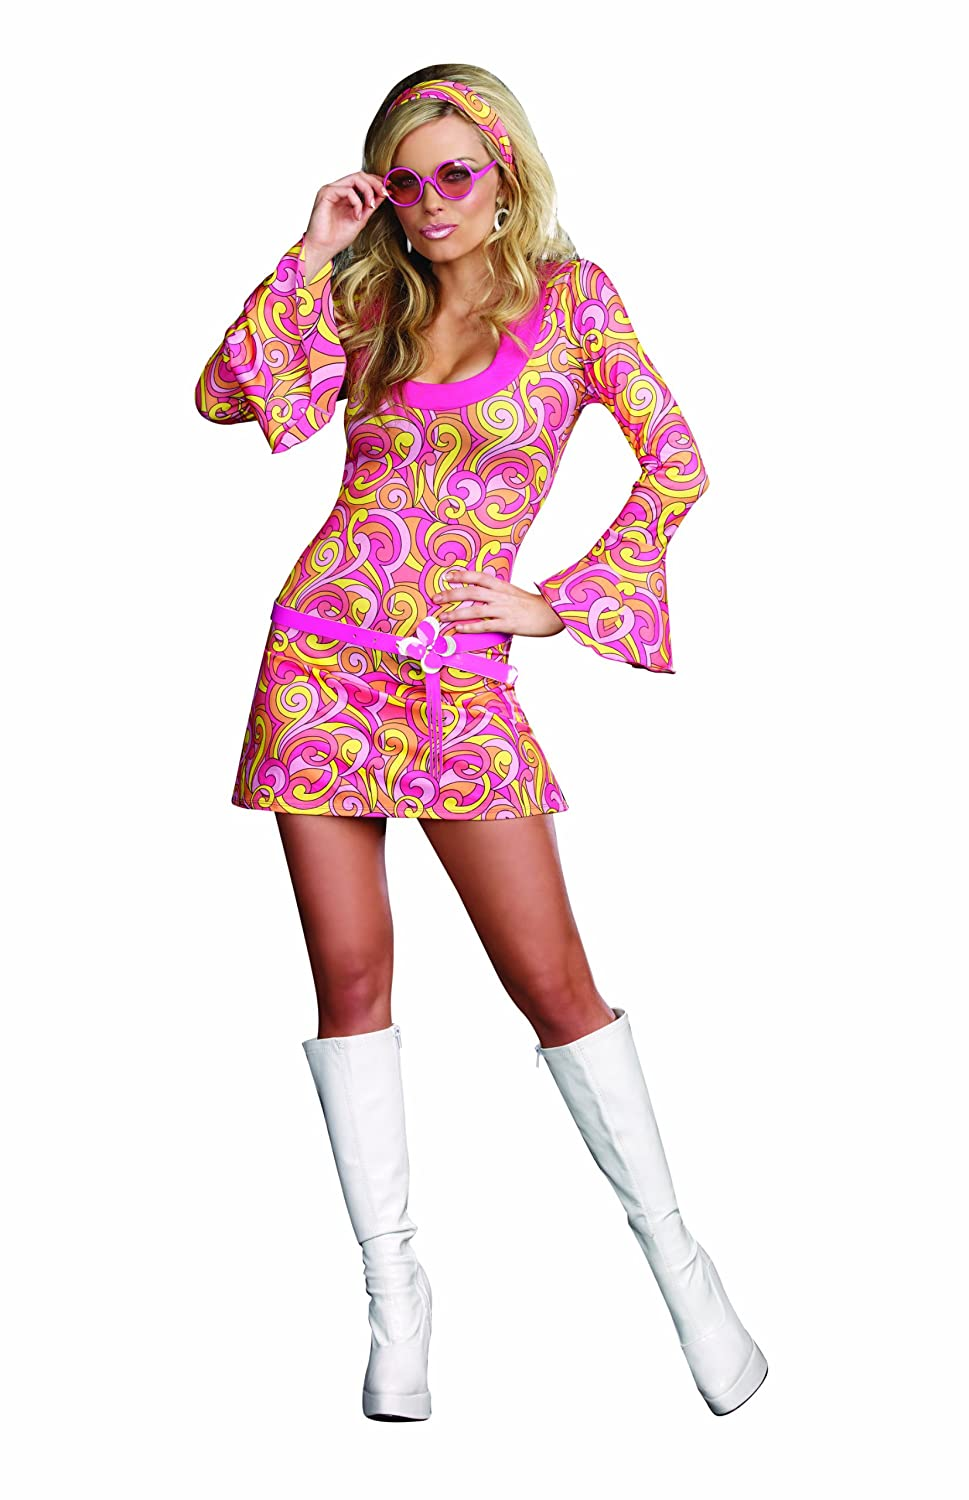 Hippie Dress | Long, Boho, Vintage, 70s Dreamgirl Womens Go Go Gorgeous Costume $26.99 AT vintagedancer.com